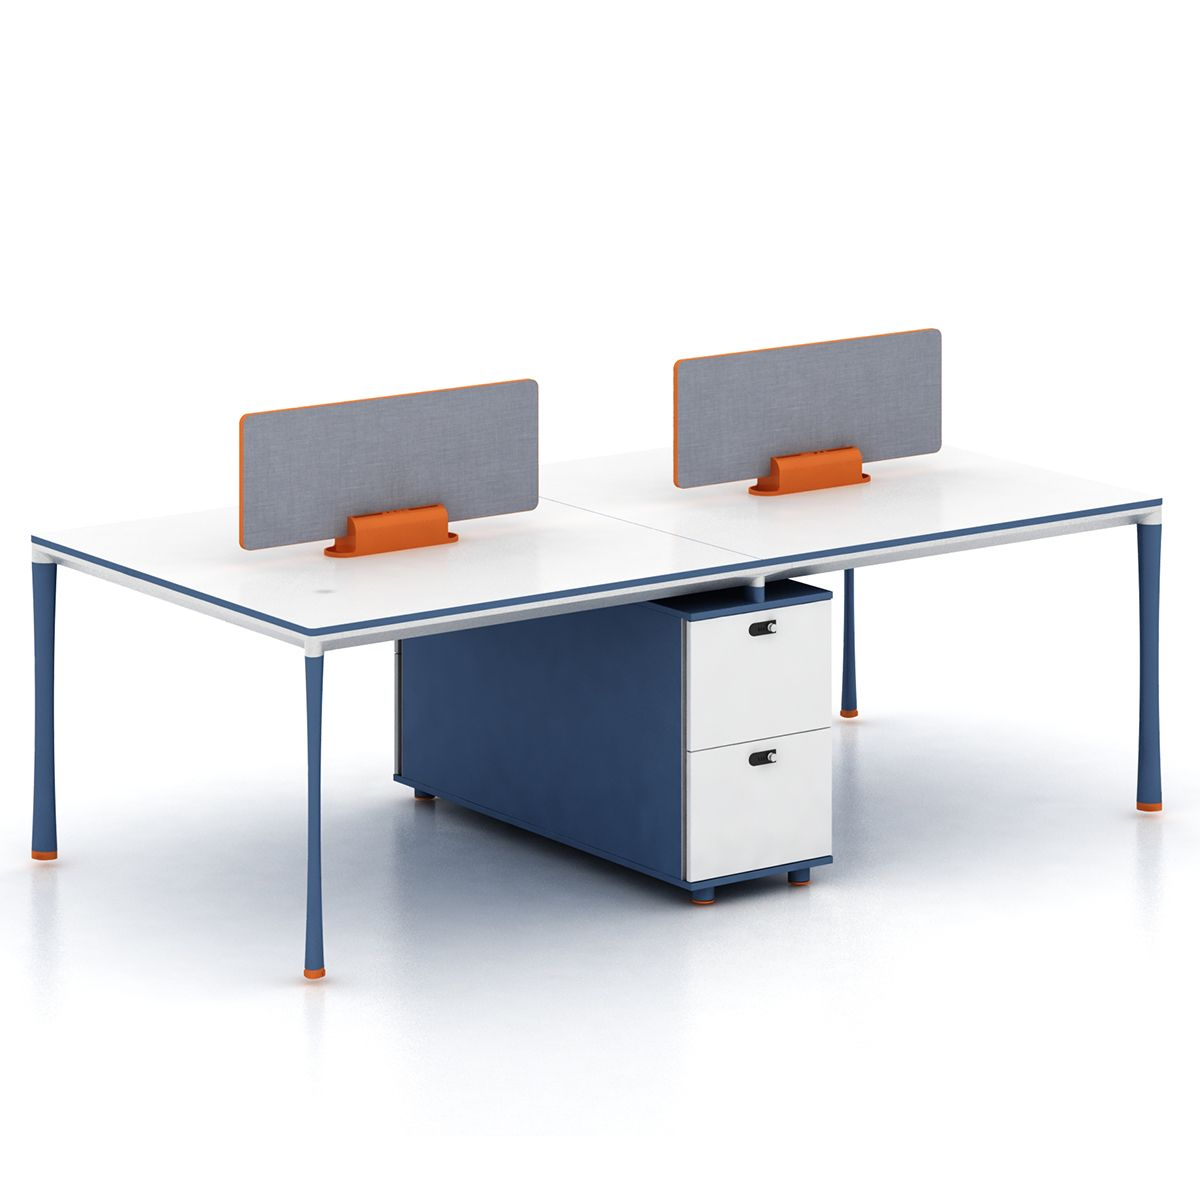 Hot Item European Style Office Desk General Use Office Furniture Sets Small Corner Home Office Table For Office Furniture In 2020 Home Office Table Used Office Furniture Office Furniture Sets